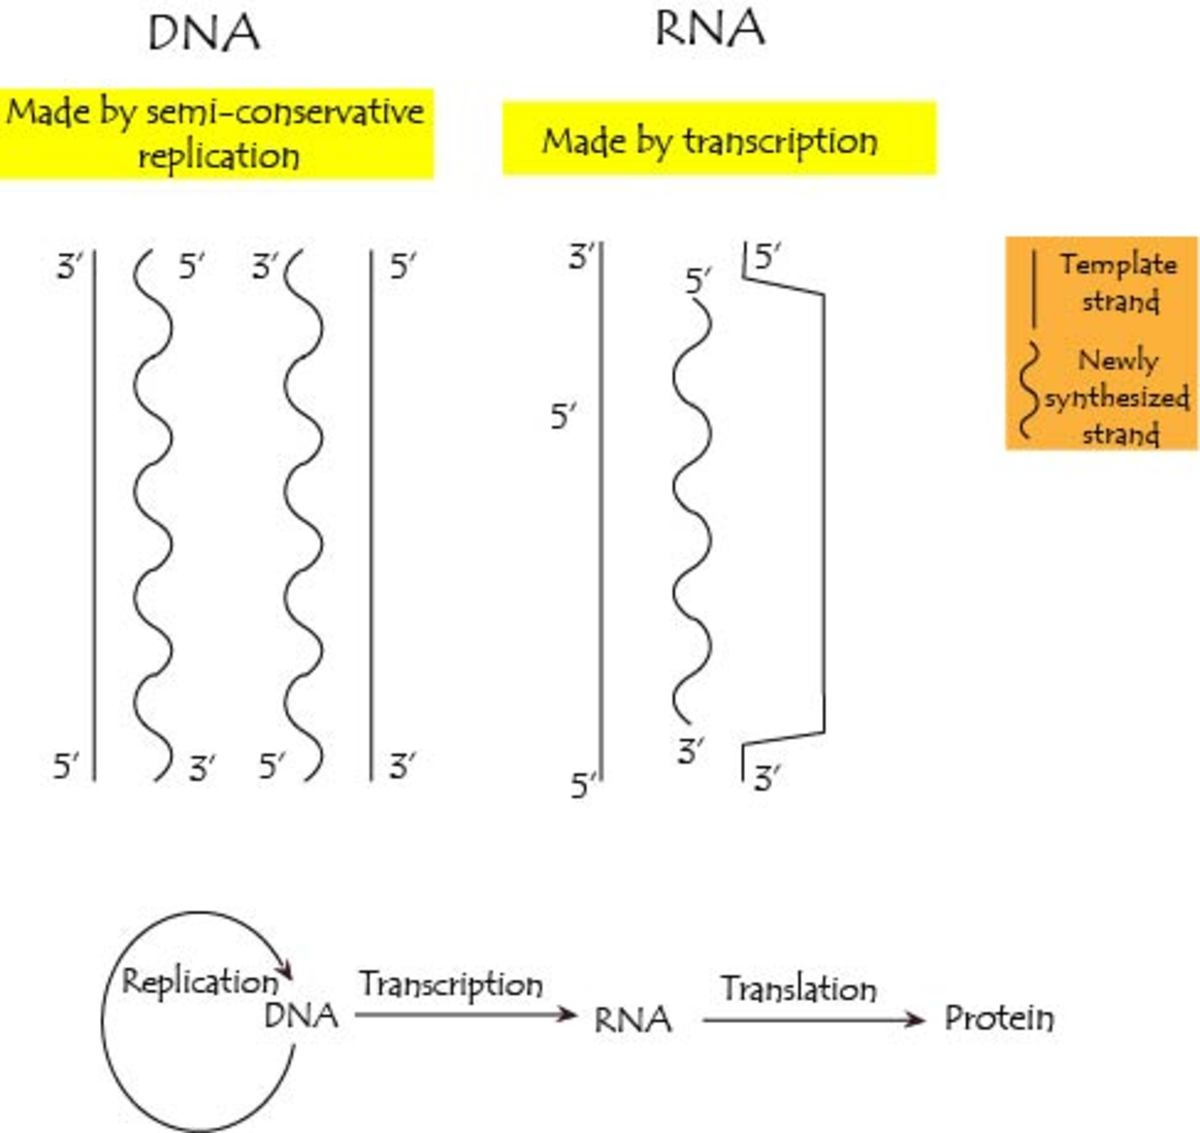 DNA is synthesized via replication and RNA is synthesized via transcription